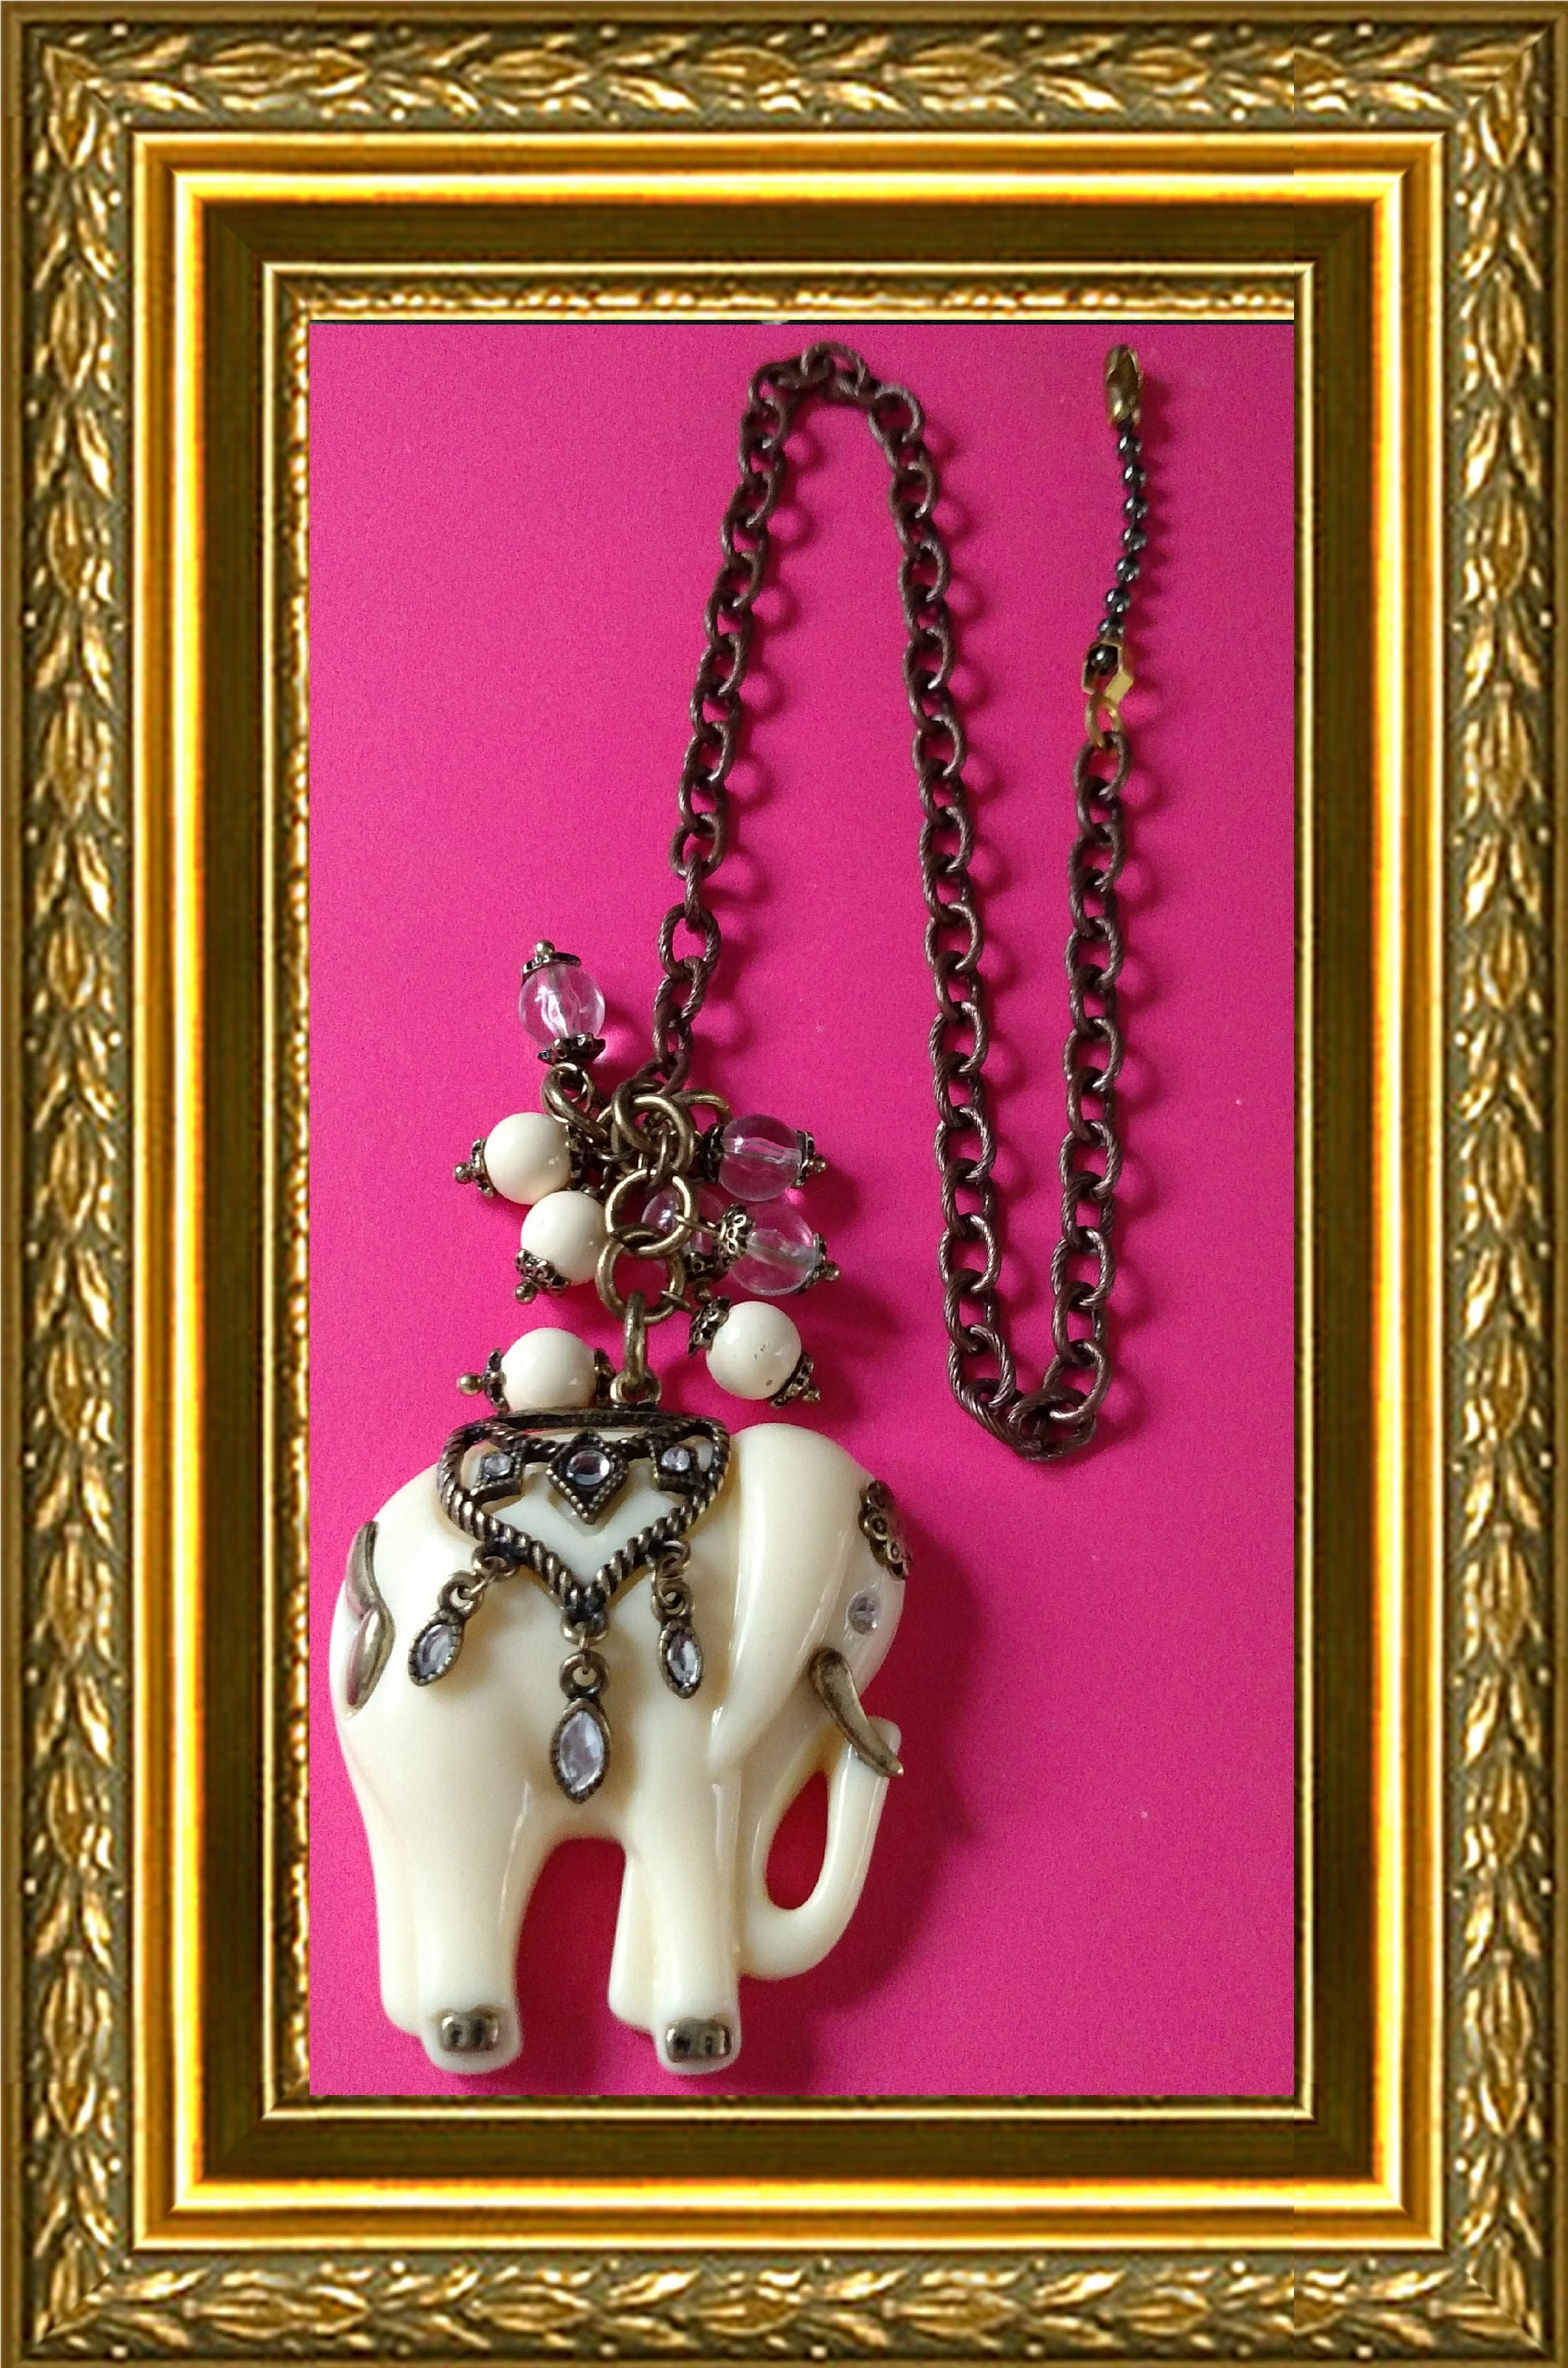 Elephant Ceiling Fan Pull Chain Home Decor Bronze Link Chain Faux Ivory Elephant W Bronze